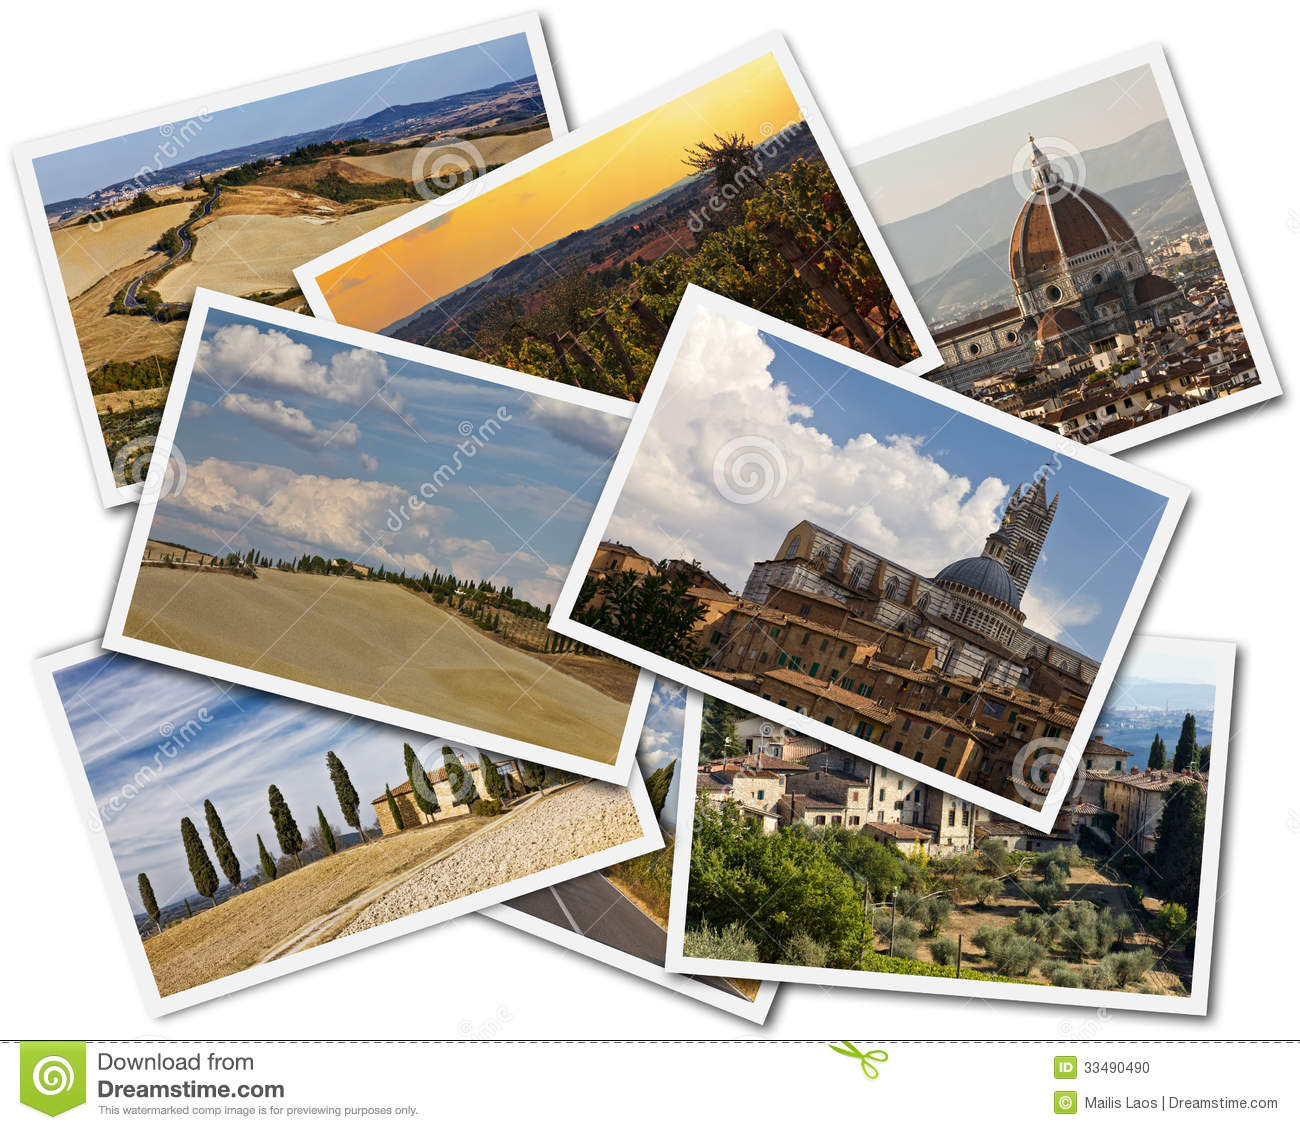 Download Tuscany Collage stock photo. Image of agriculture, isolated - 33490490